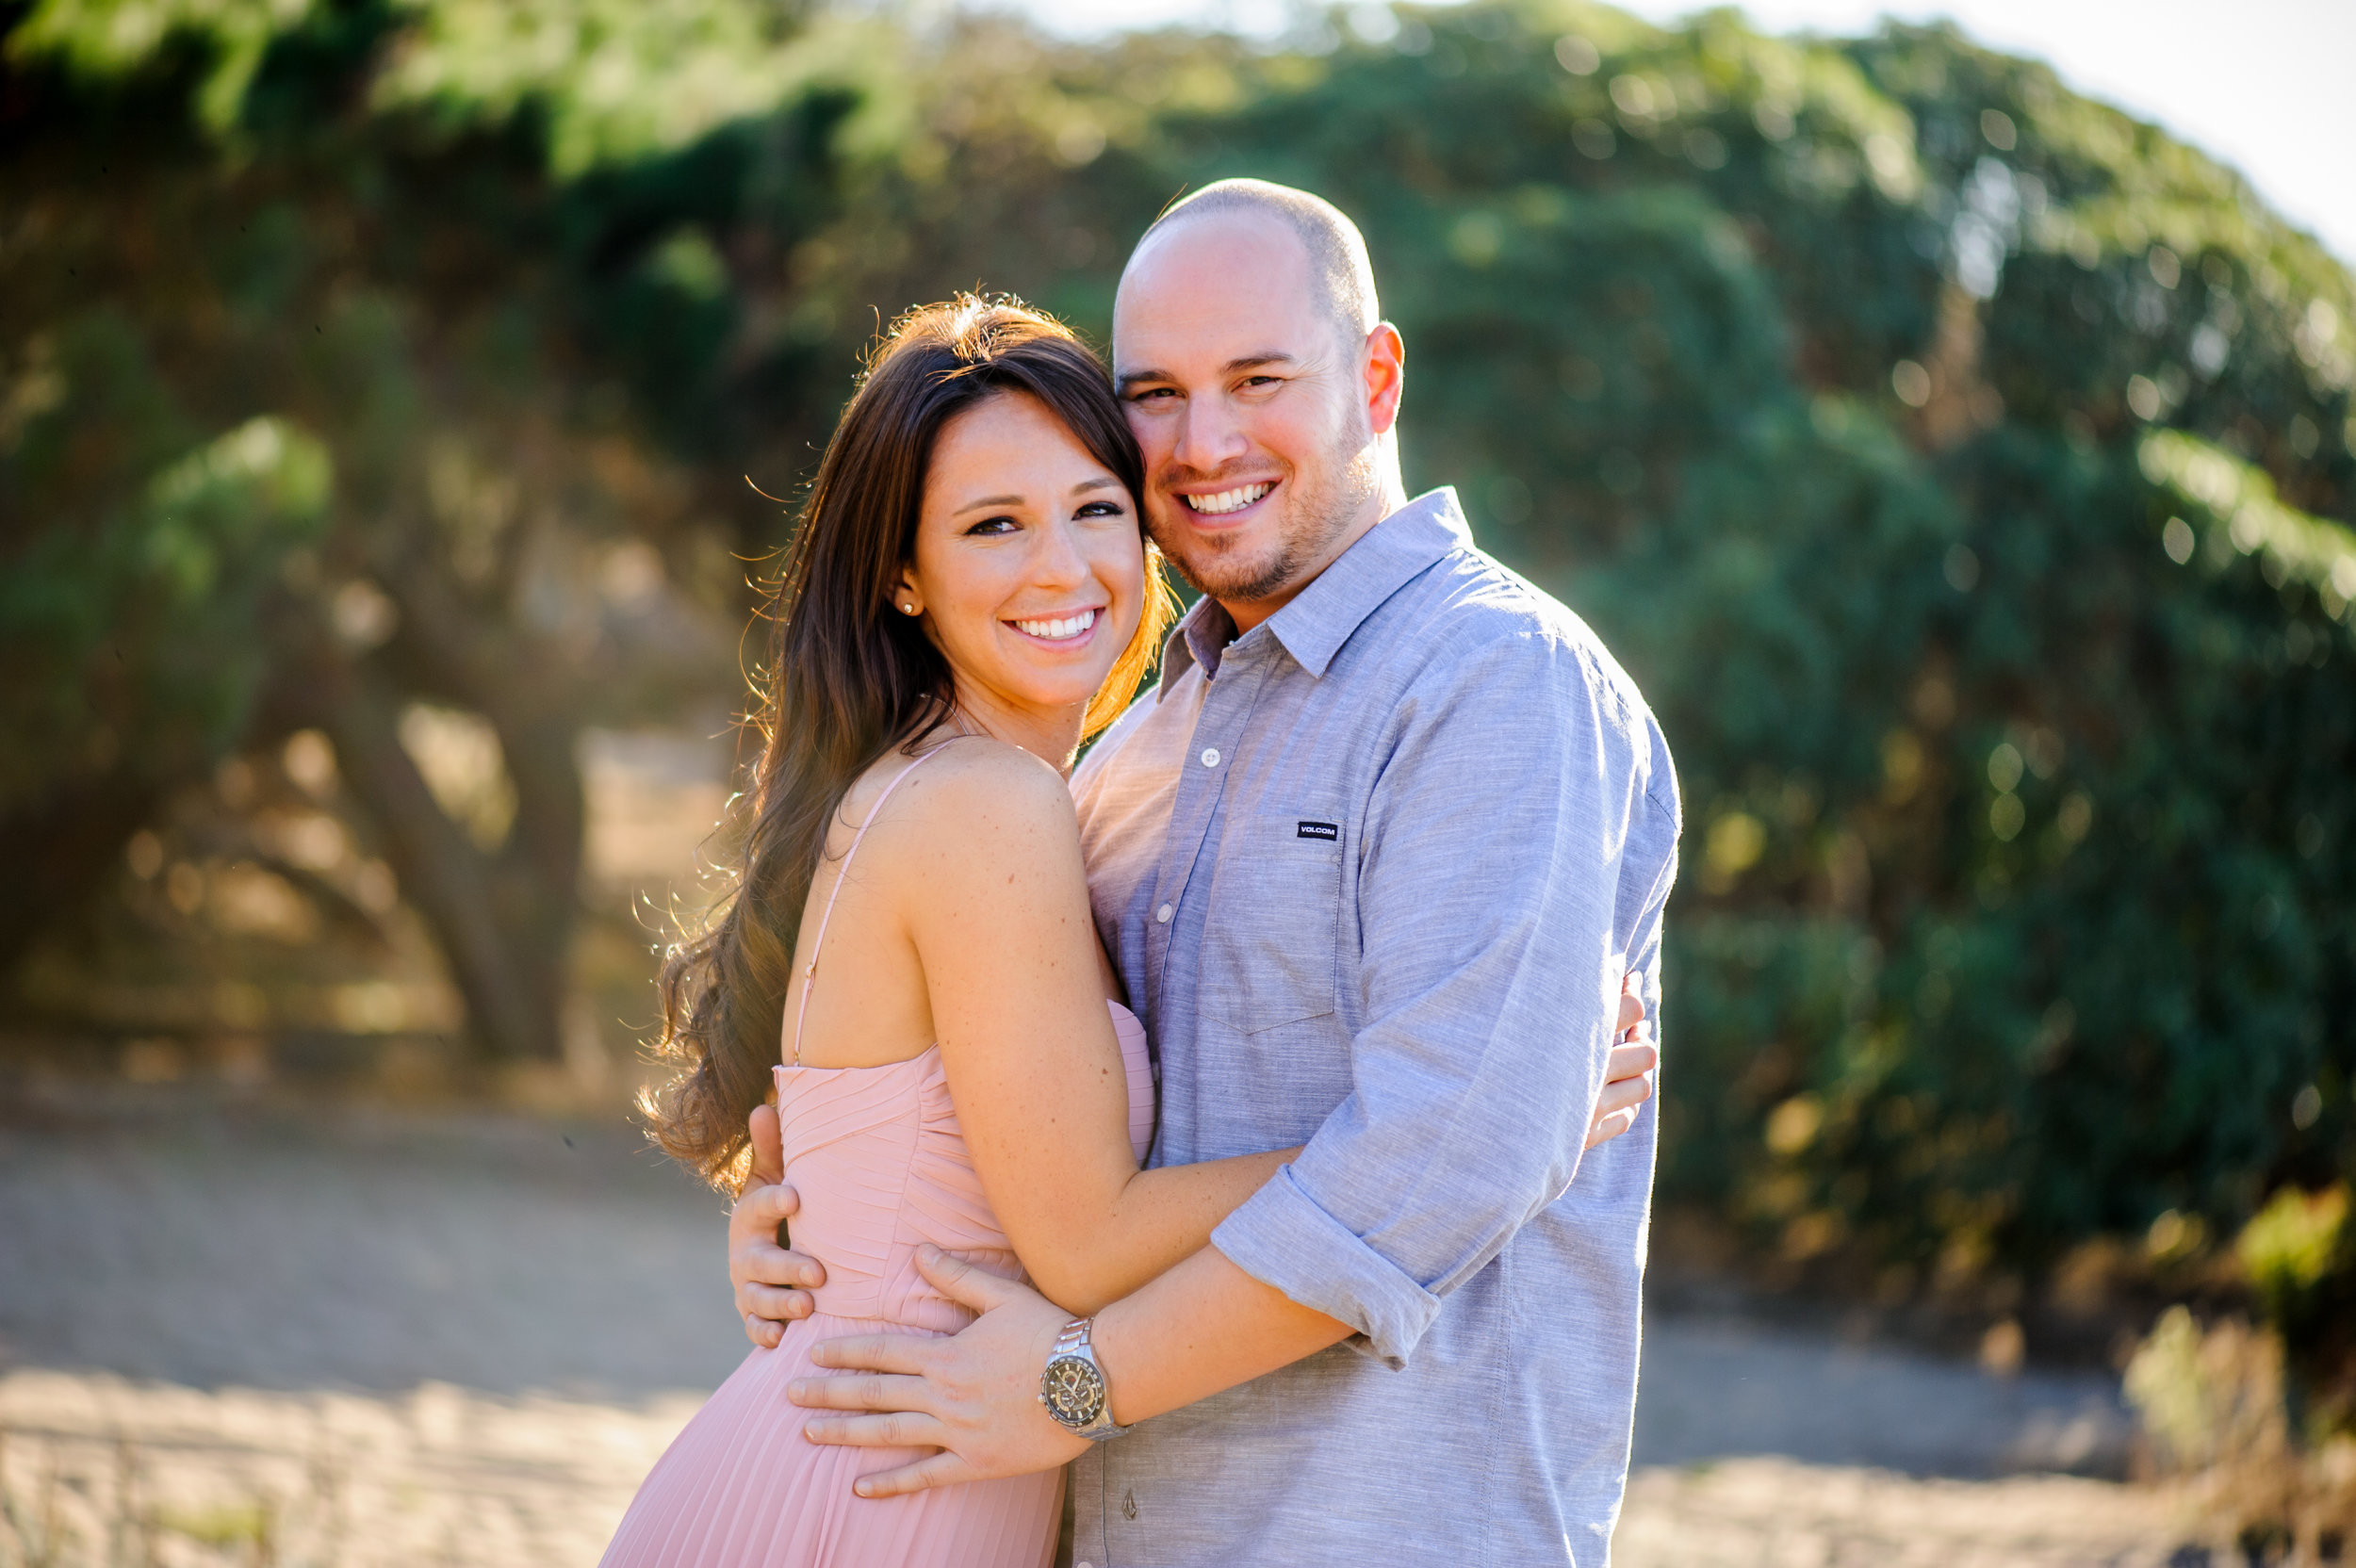 jenny-sean-006-san-francisco-giants-engagement-wedding-photographer-katherine-nicole-photography.JPG